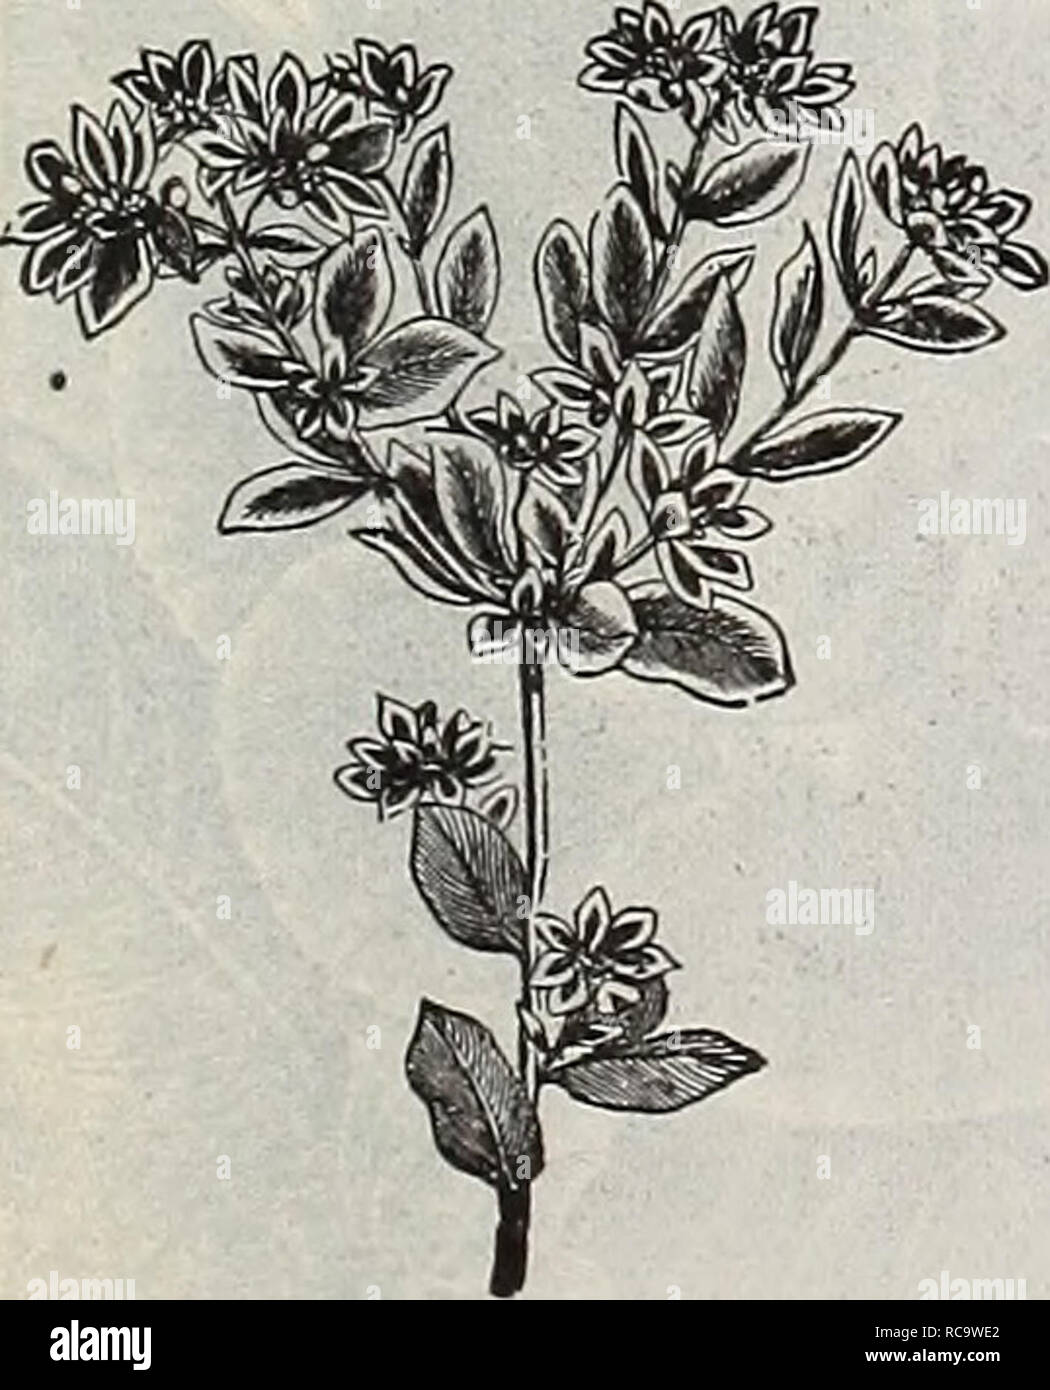 . Dreer's 1901 garden calendar. Seeds Catalogs; Nursery stock Catalogs; Gardening Equipment and supplies Catalogs; Flowers Seeds Catalogs; Vegetables Seeds Catalogs; Fruit Seeds Catalogs. 2469 2480 ESCHSCHOLTZIA. 15 EUPATORIUM. PHRPKT 2141 Fraseri. A very pretty her- baceous hardy perennial plant, blooming the first season from seed, producing clusters of snowy-white flowers; fine for cutting and bouquets; 1^ feet. FERNS. These ornamenlal plants are very de- sirable for WarJian cases or ferneries; thriving in a peaty, sanily soil, and moist, shady positions in the garden during the summer. The - Stock Image